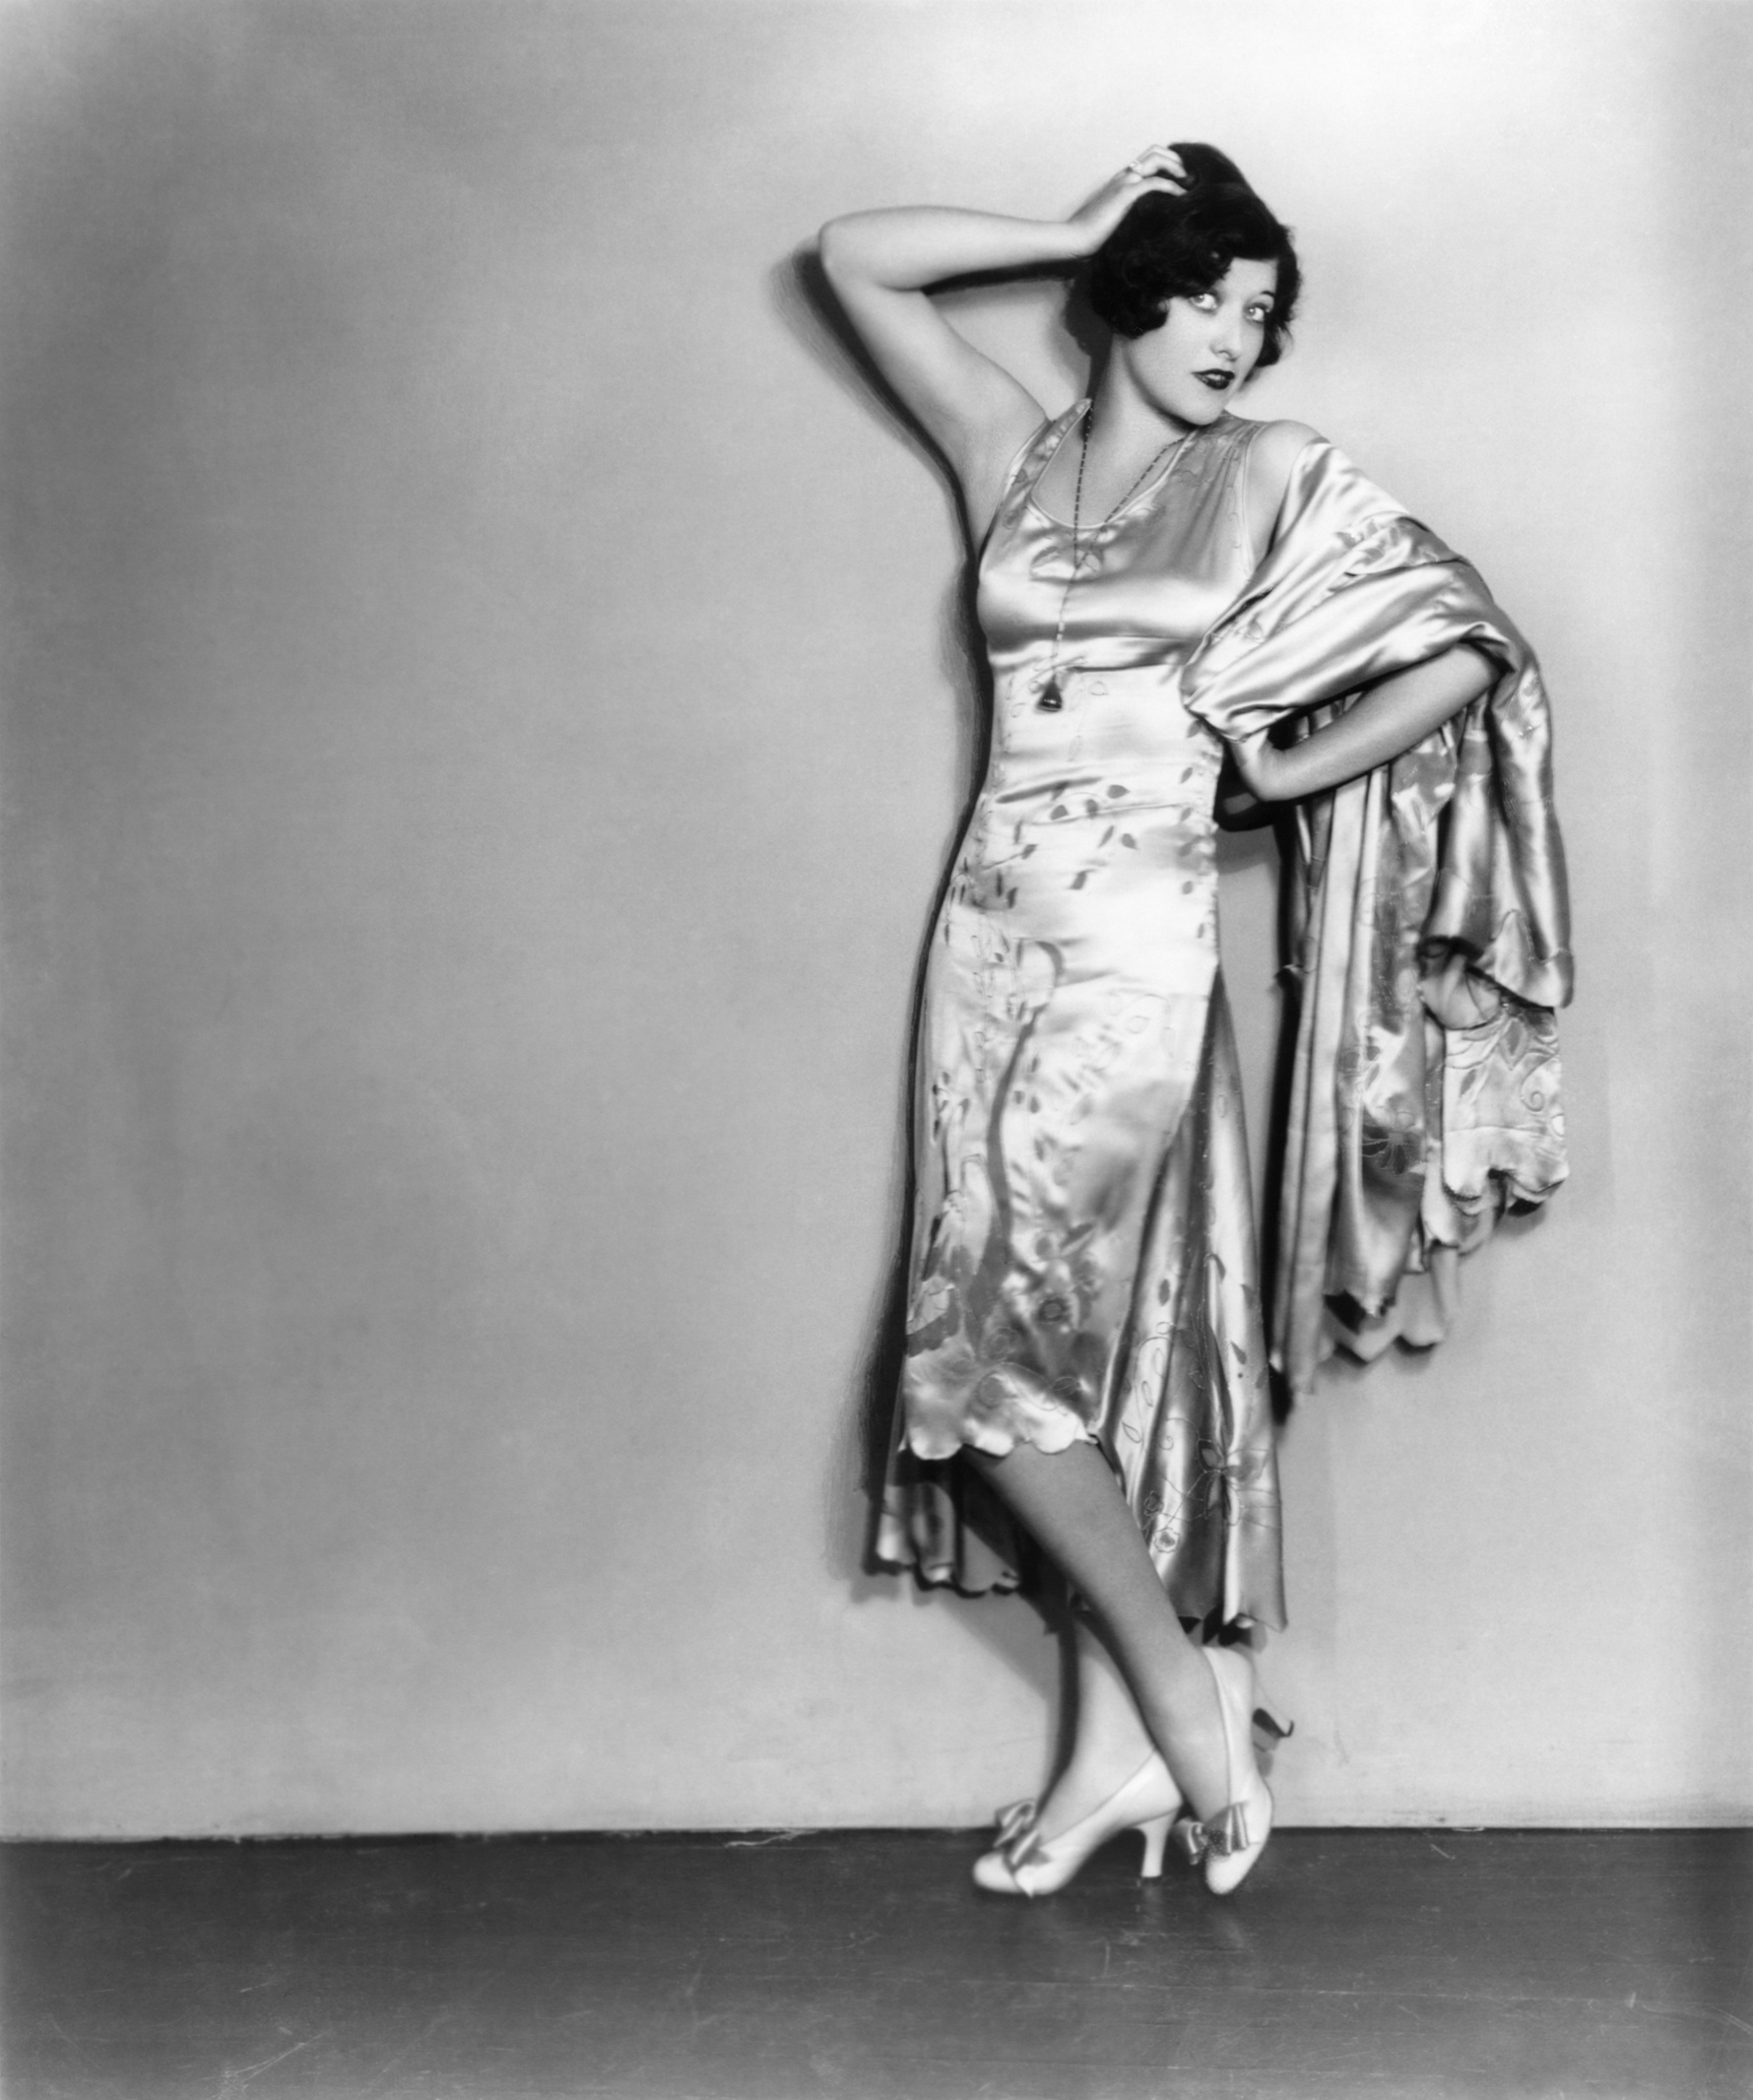 giay flappers 1920s 26 joan crawford